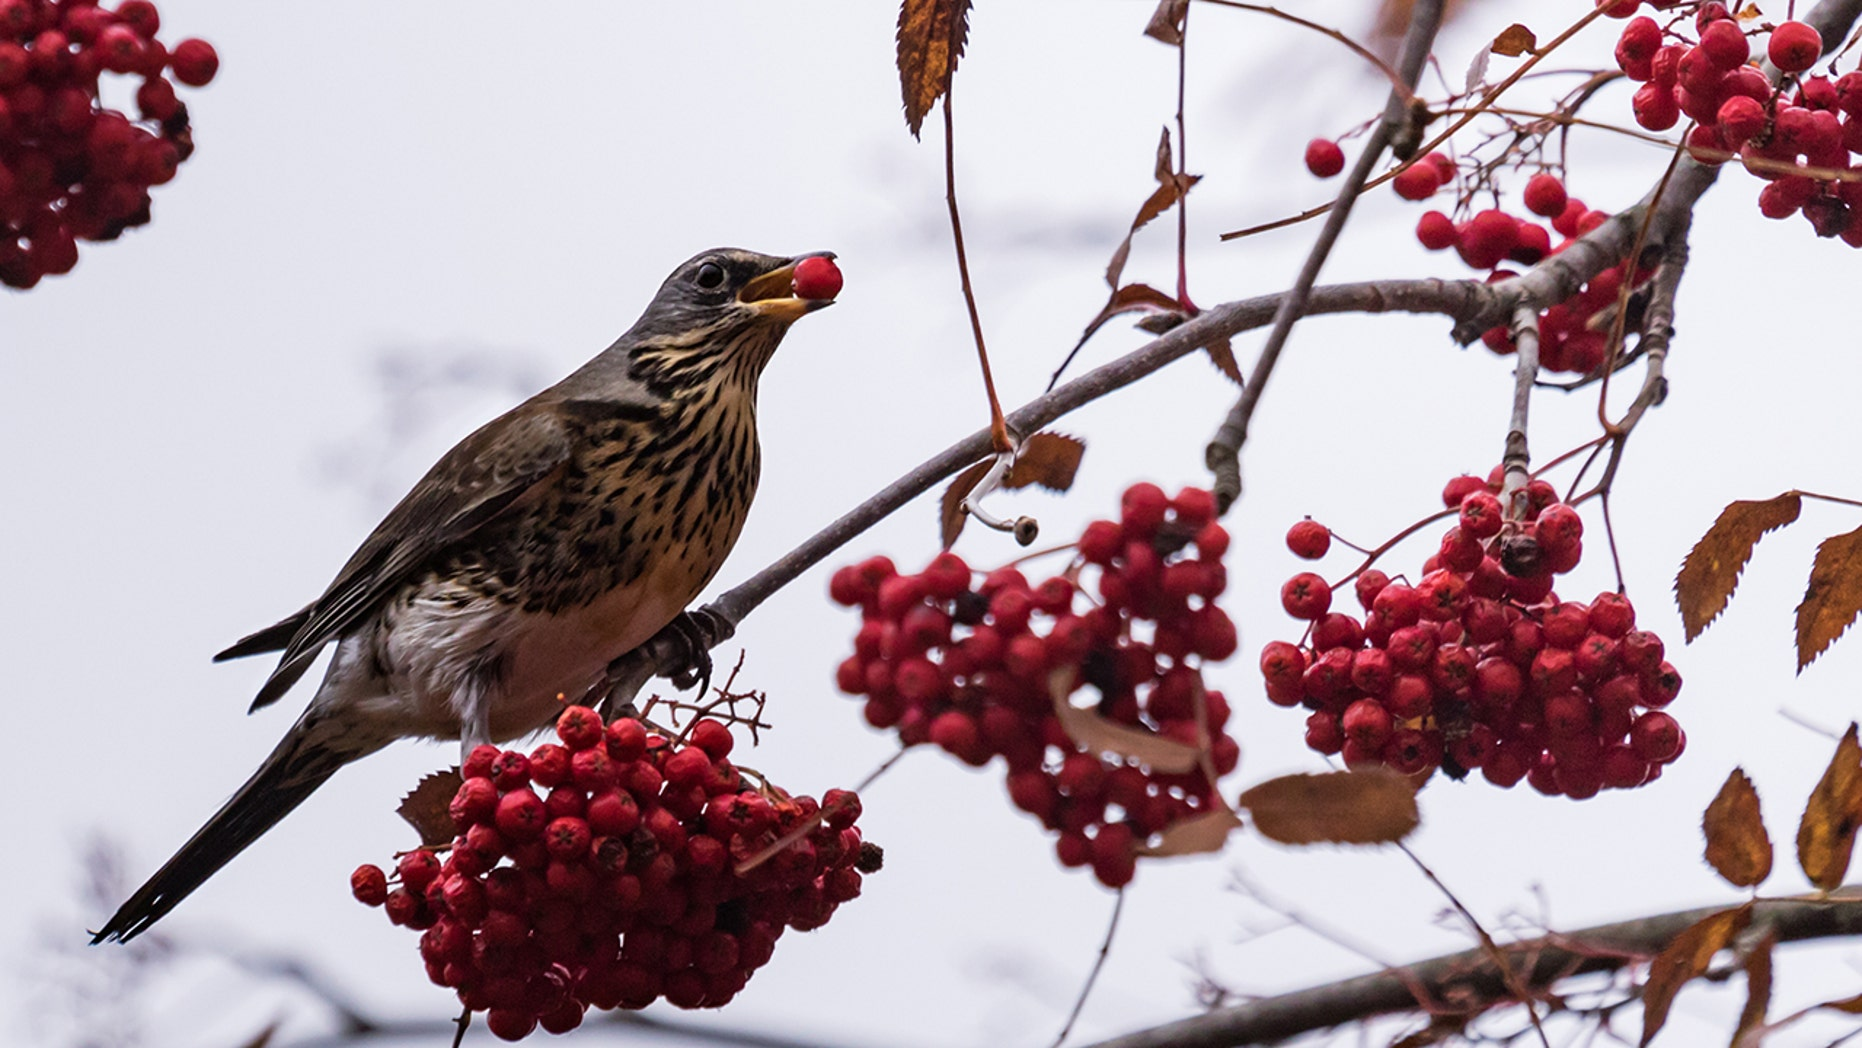 Minnesota Birds High on Fermented Berries Terrorize Small Town